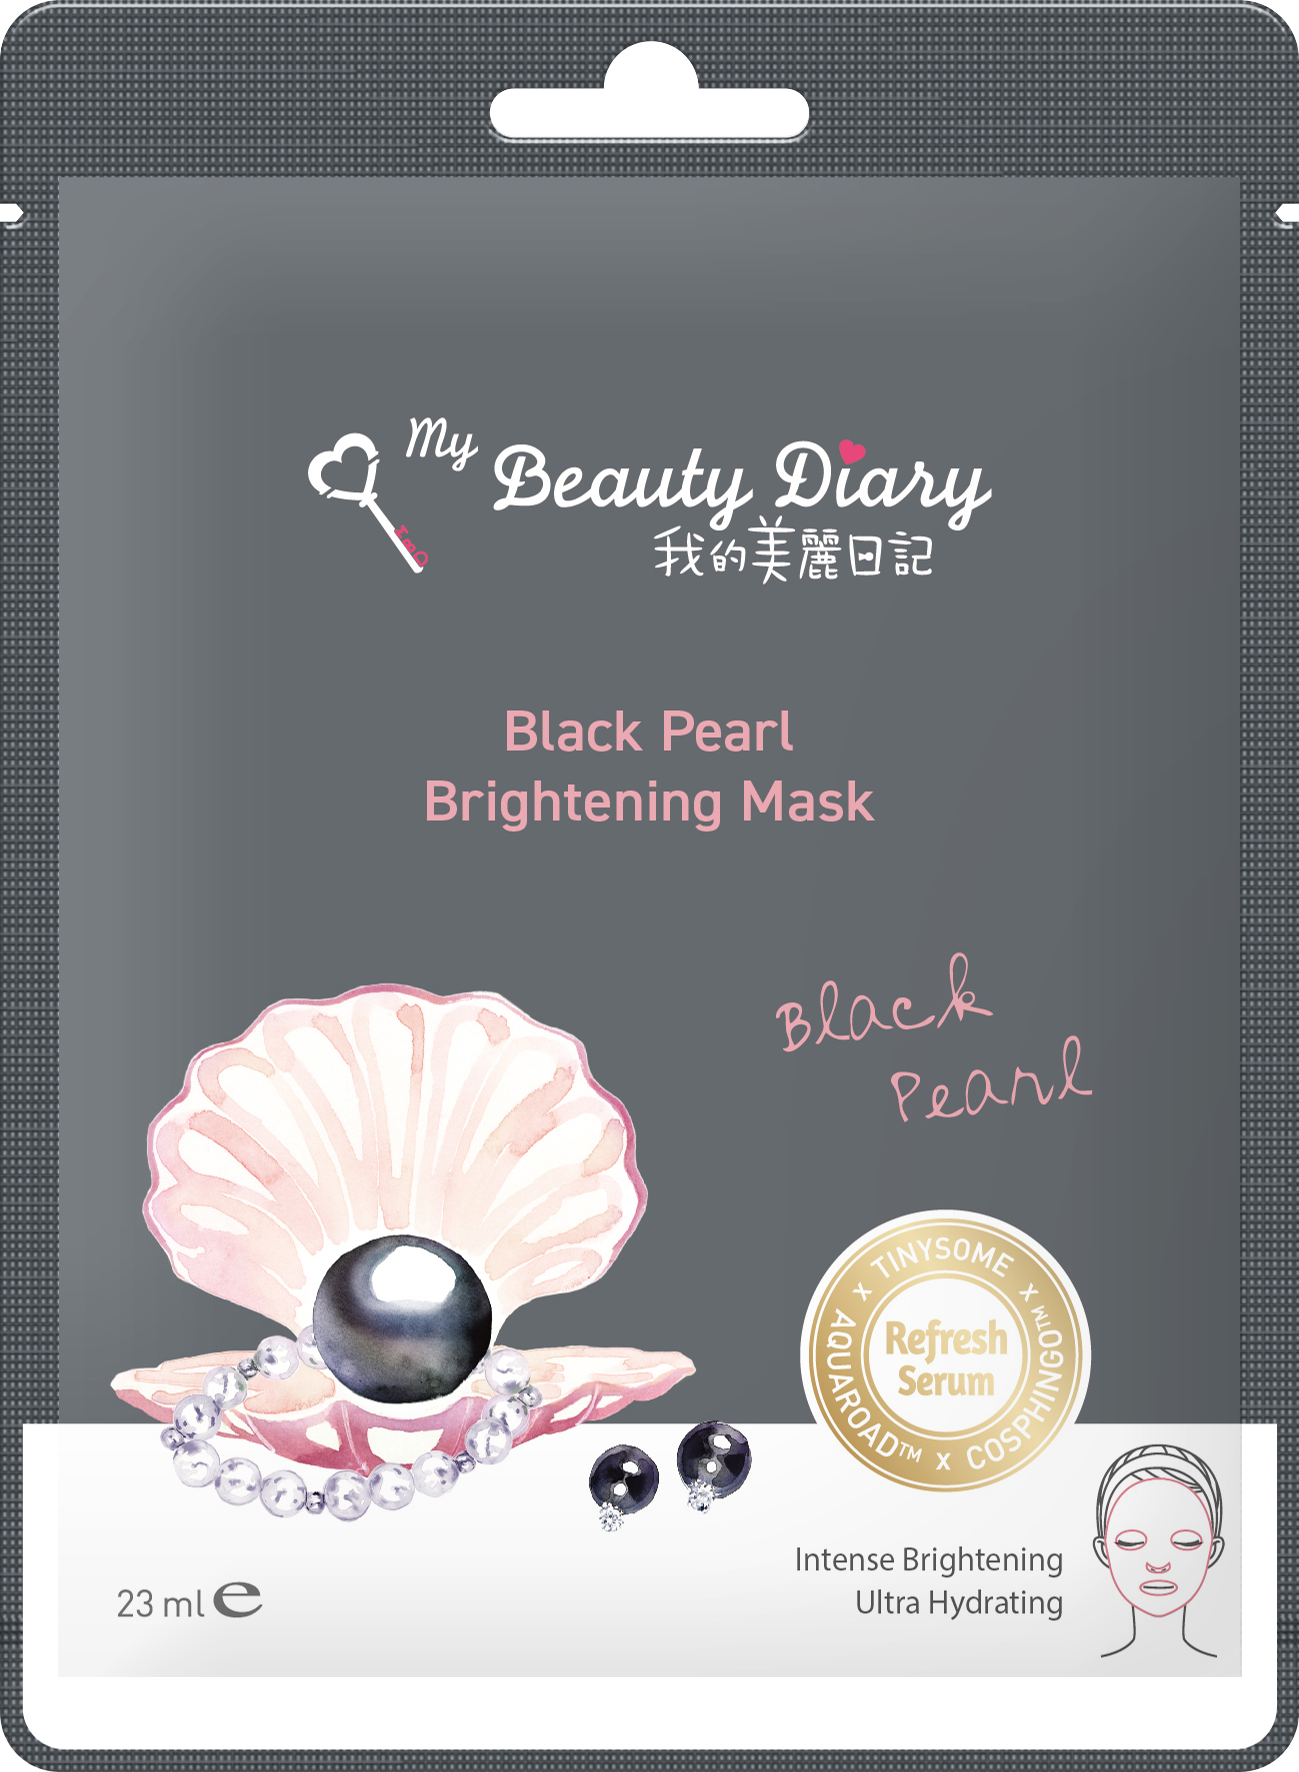 My Beauty Diary Black Pearl Brightening Mask